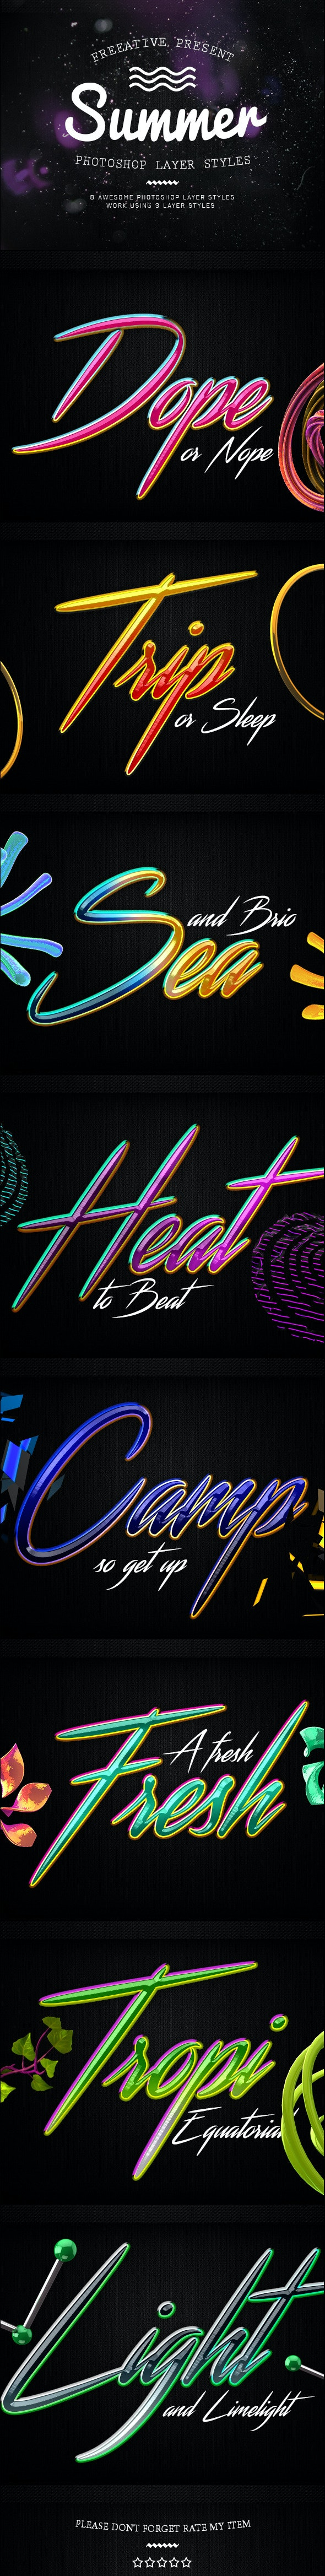 Summer Photoshop Layer Styles - Text Effects Styles